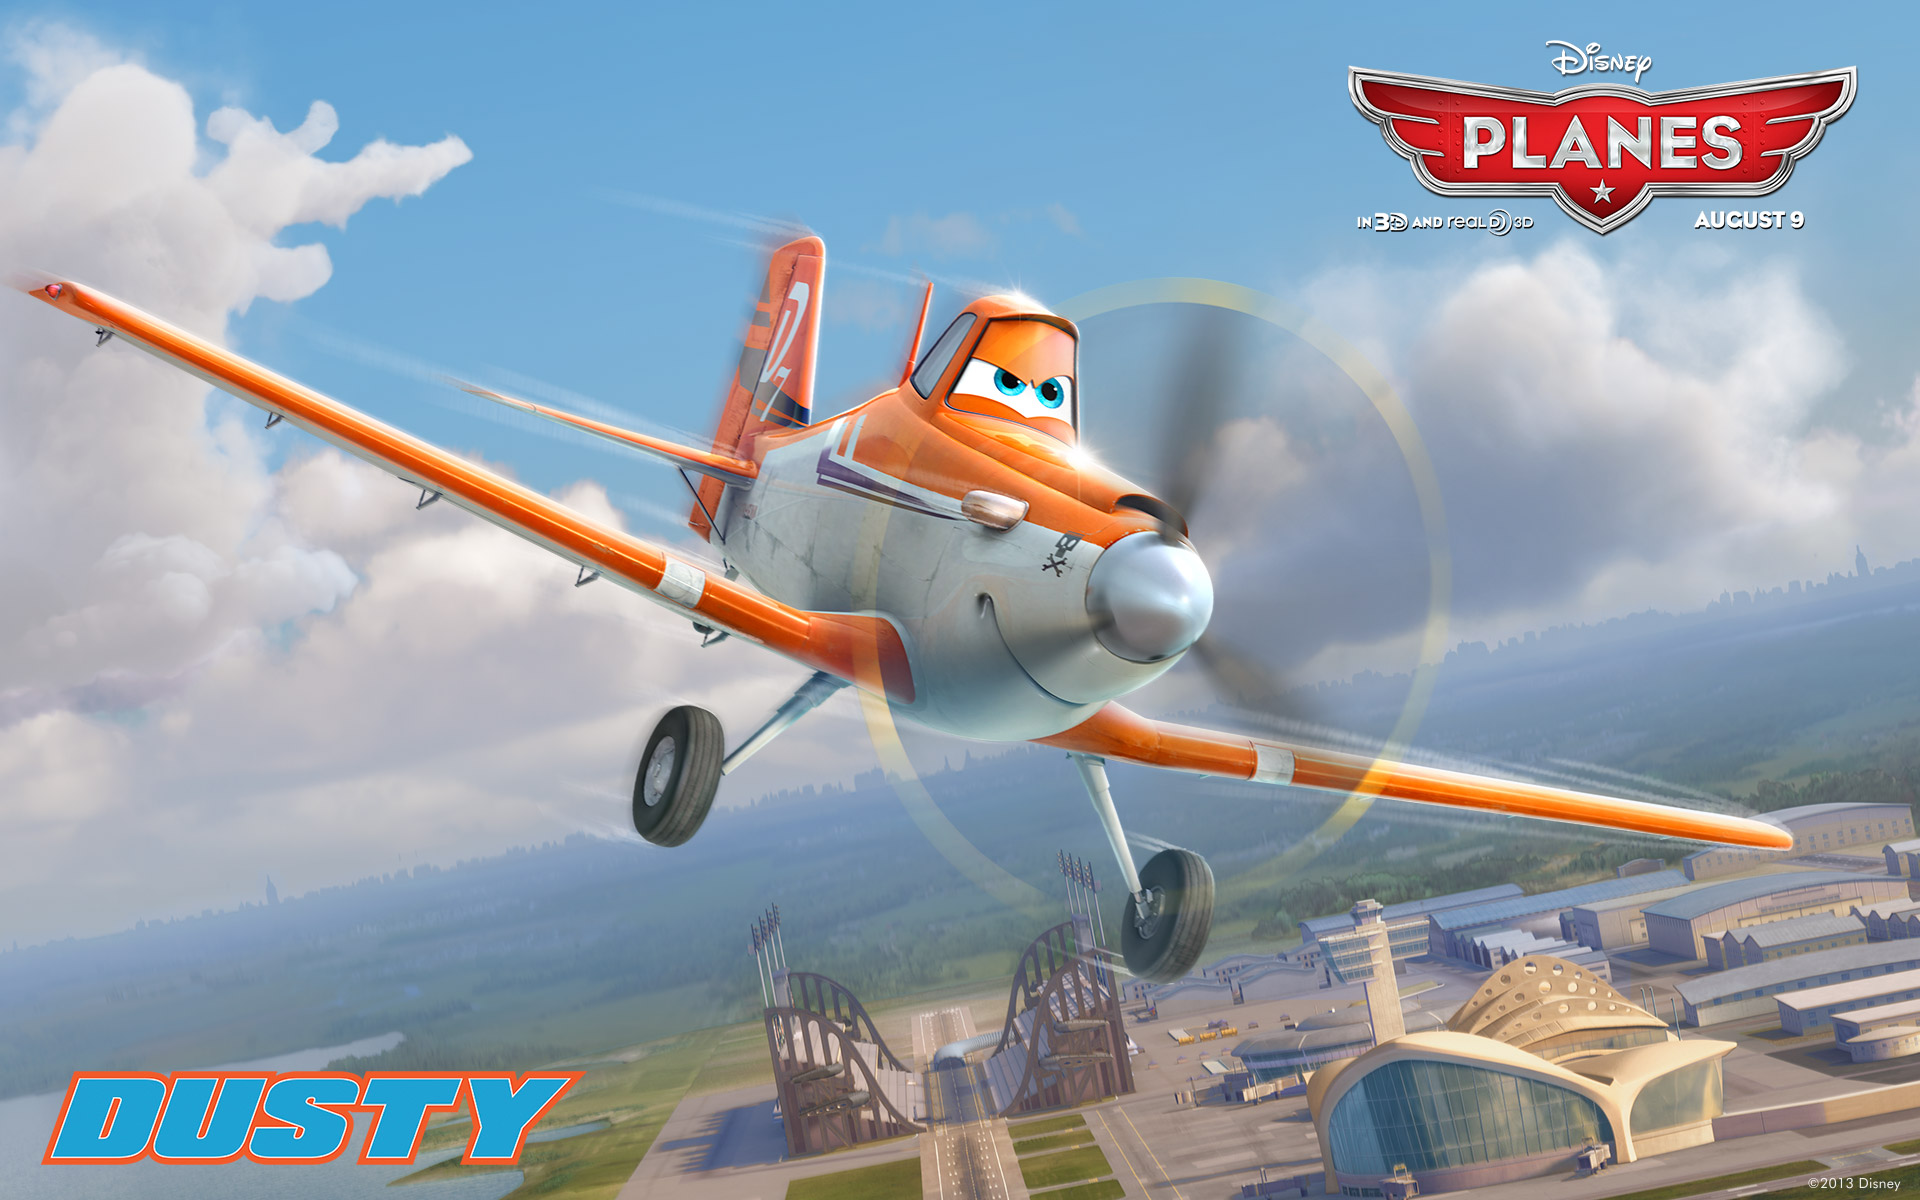 Disney Planes dusty 1920 x 1200